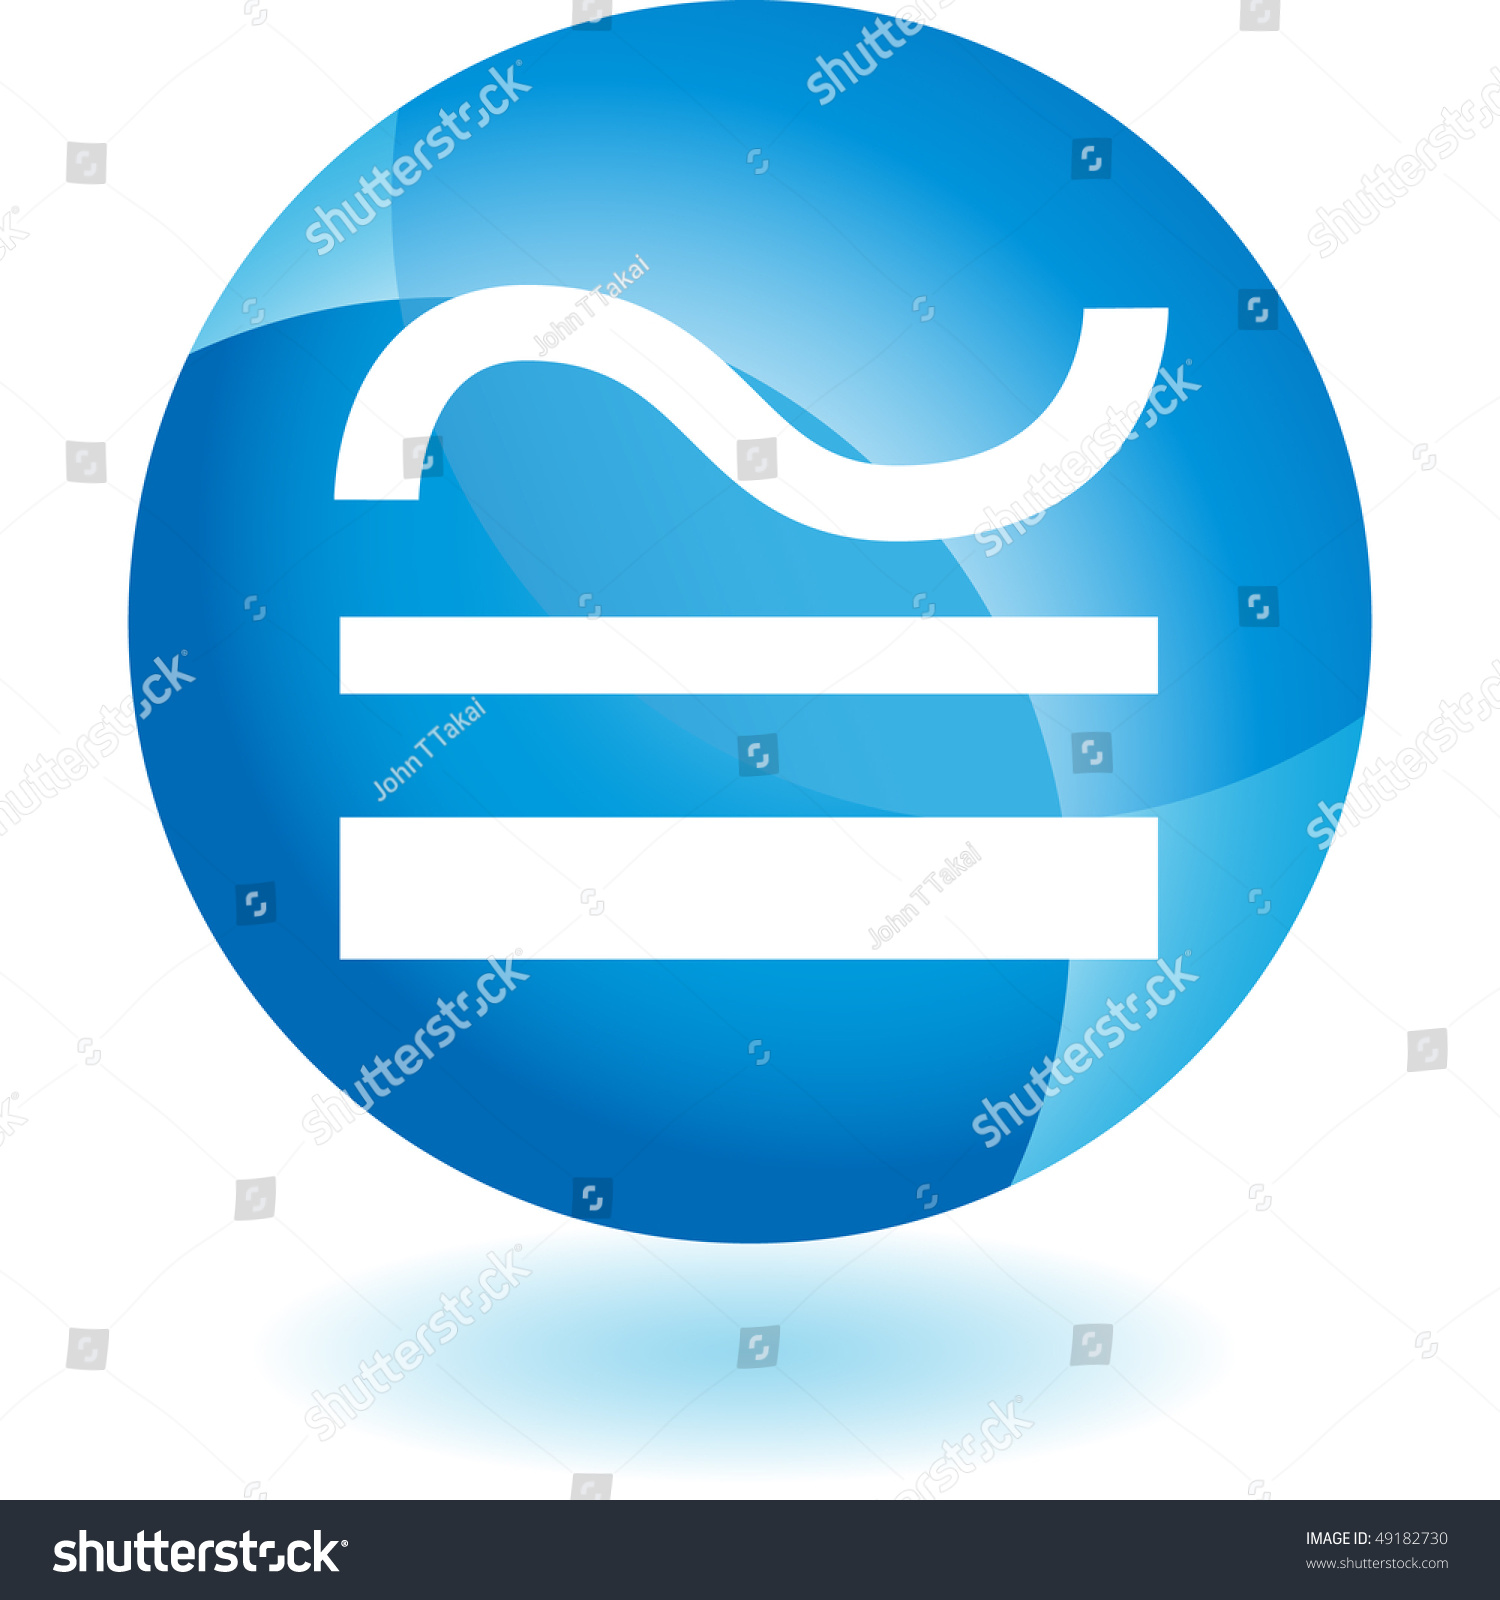 Congruence Symbol Stock Photo 49182730 : Shutterstock